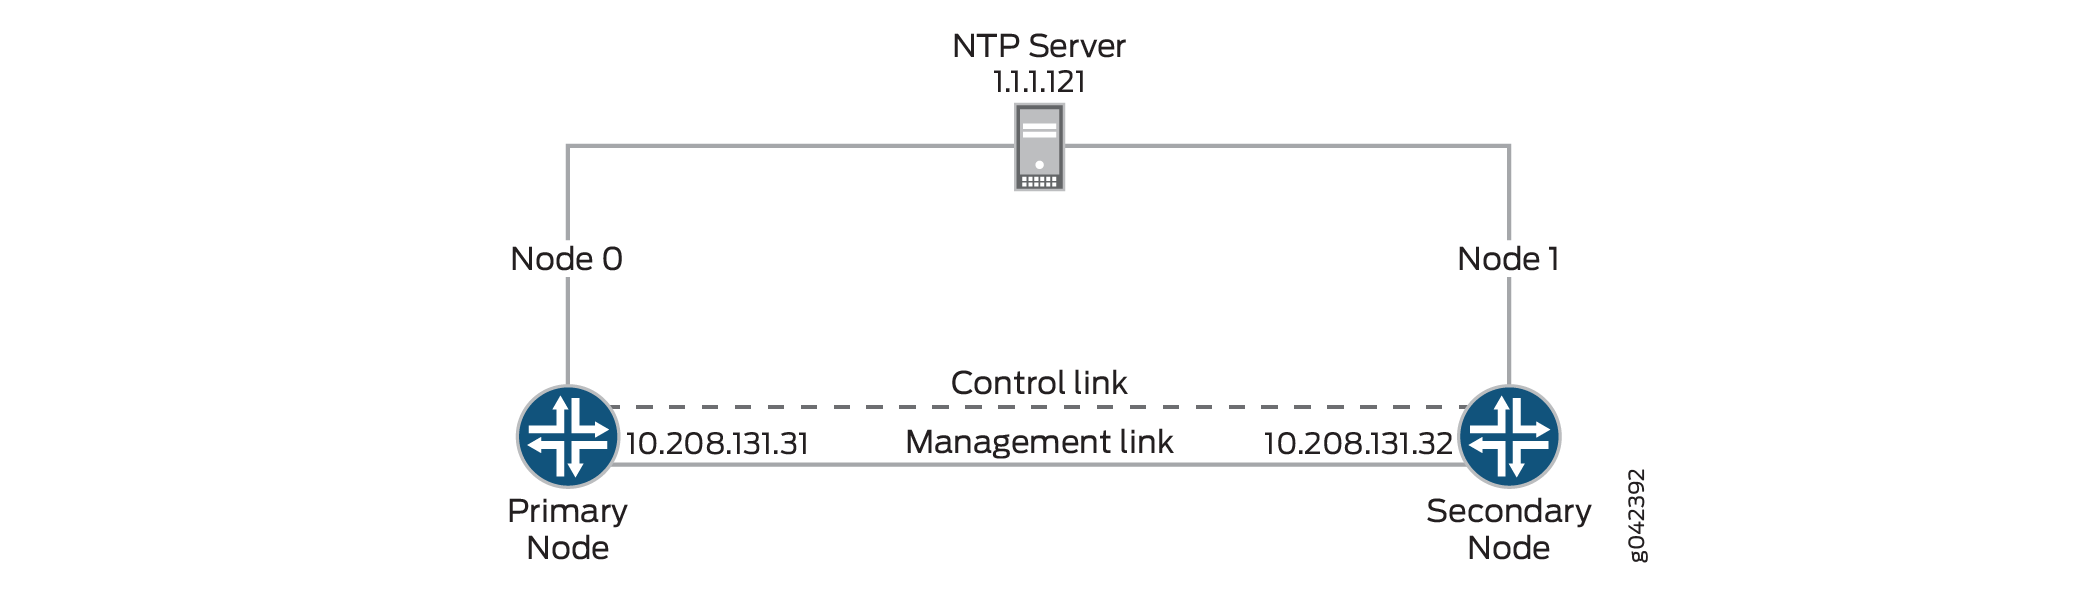 NTP Time Synchronization on Chassis Cluster - TechLibrary